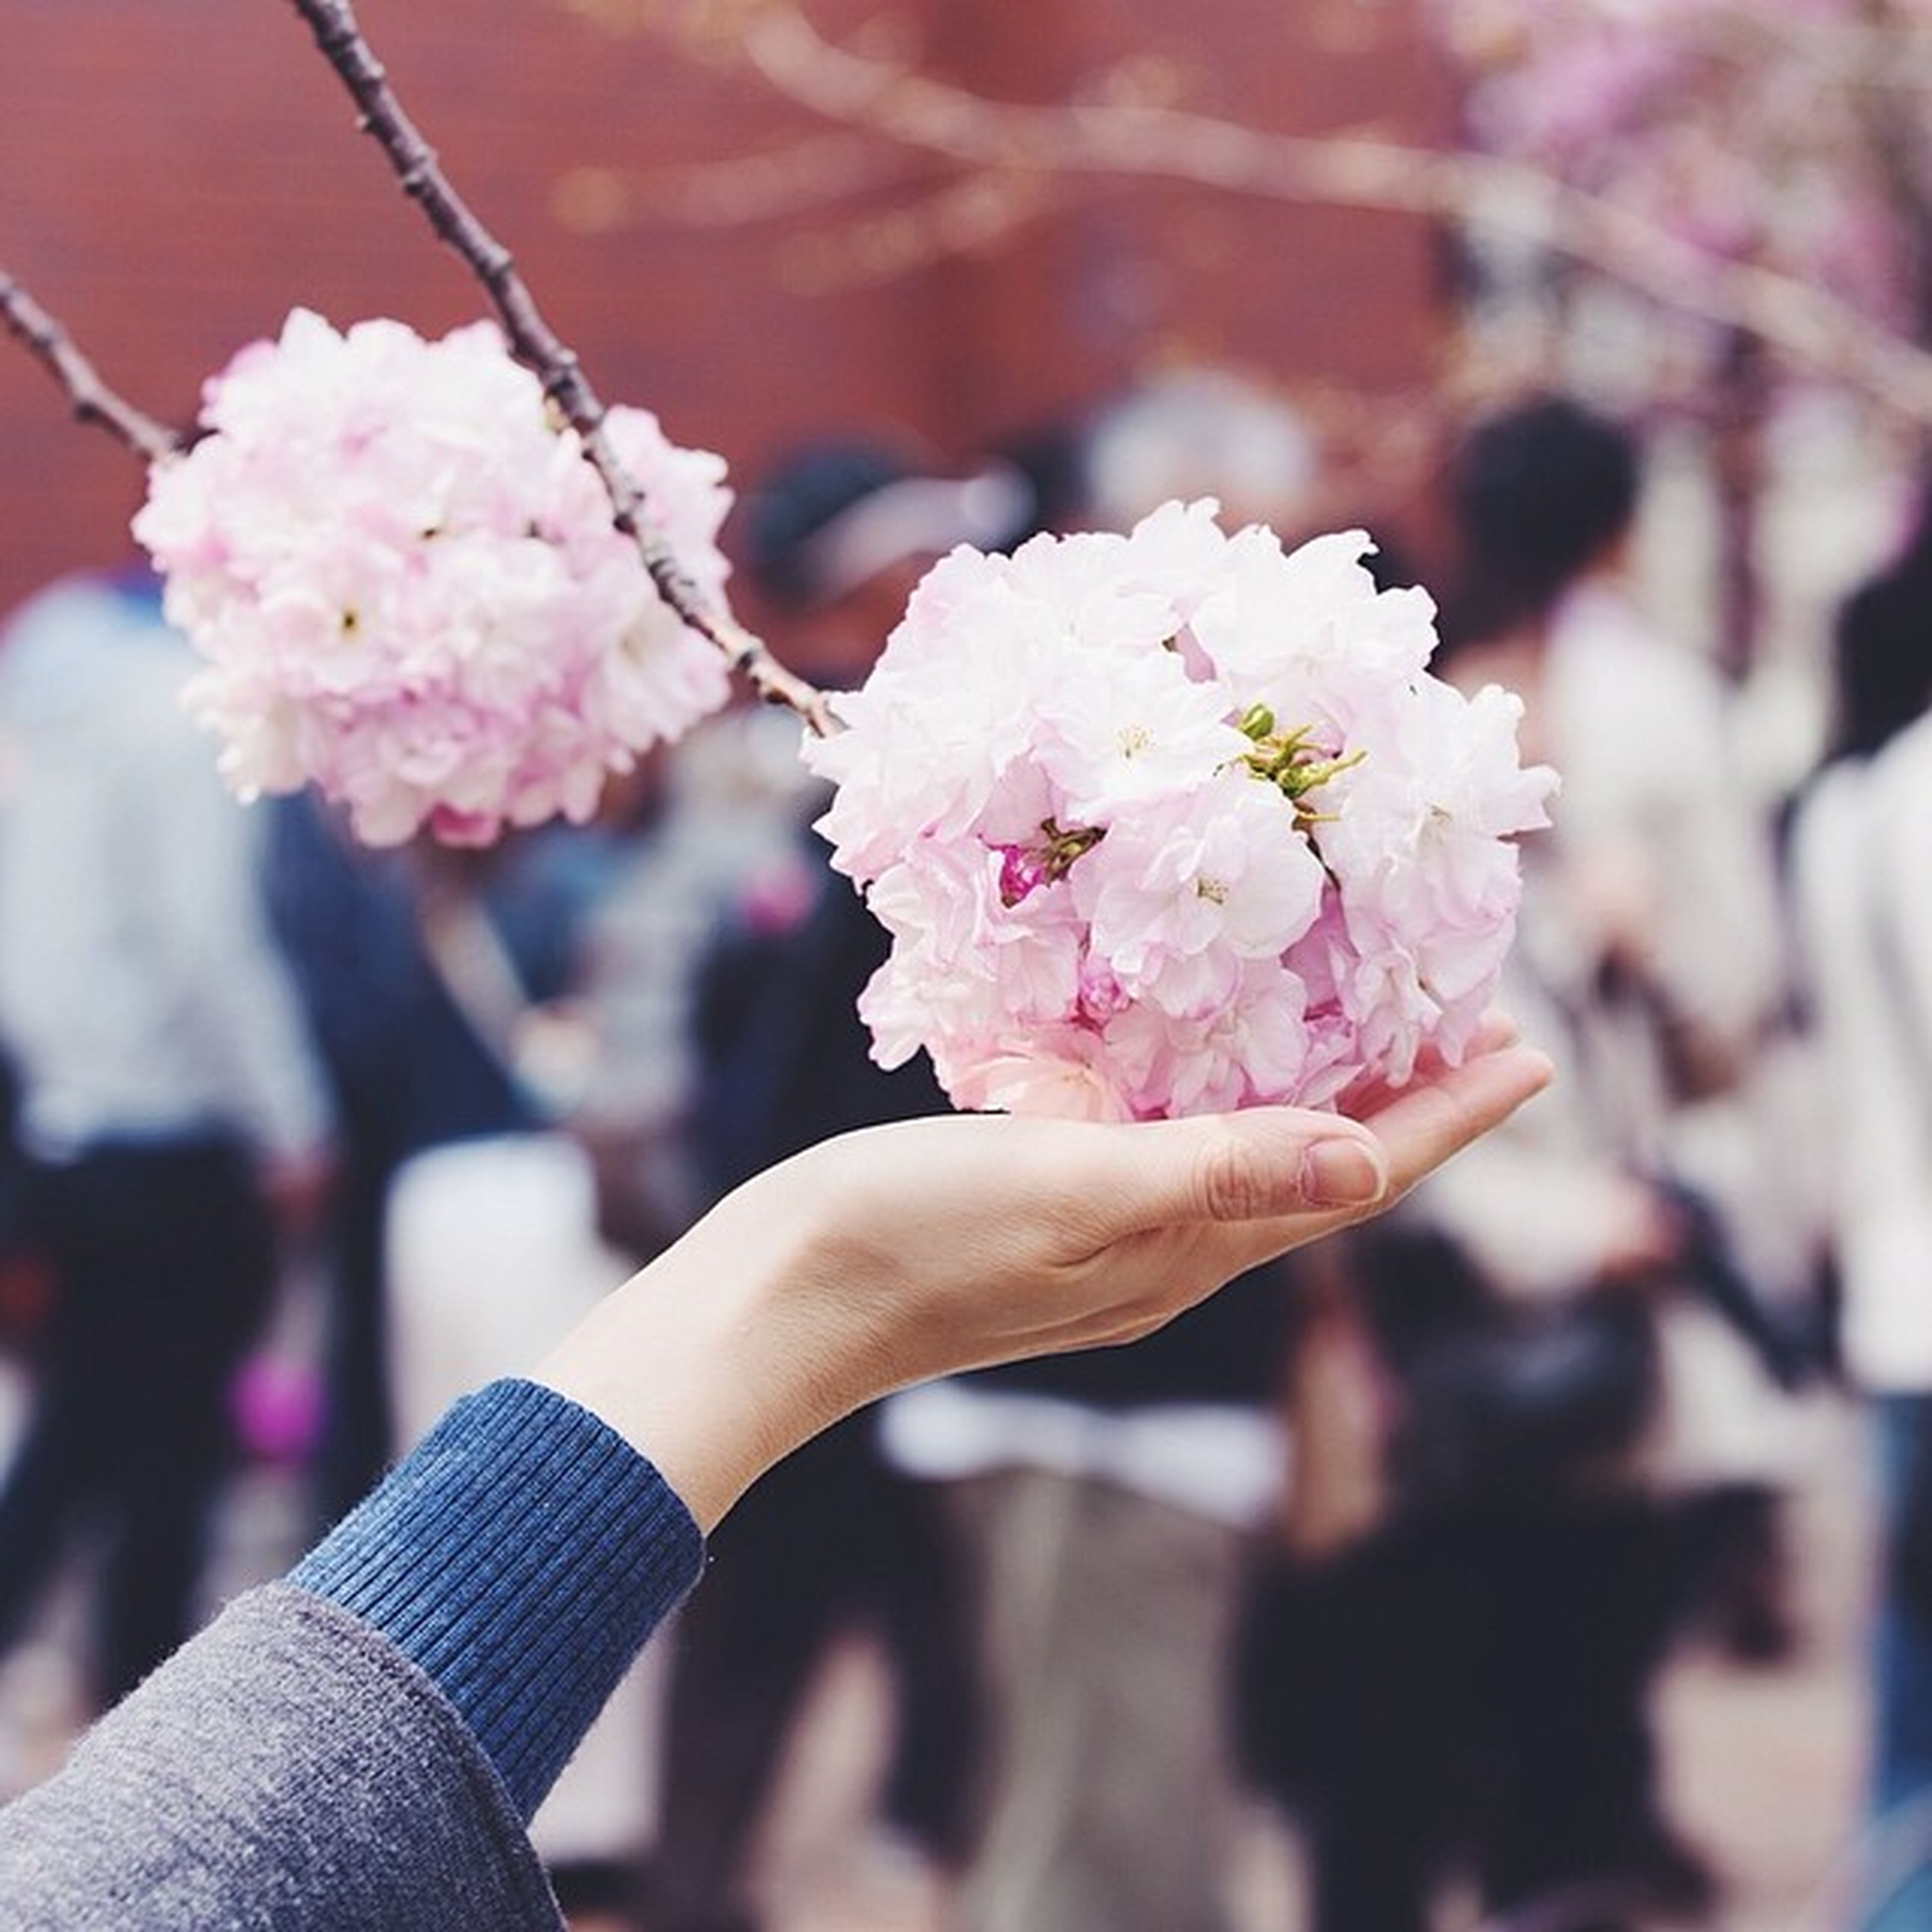 flower, freshness, holding, person, fragility, petal, focus on foreground, pink color, part of, lifestyles, flower head, unrecognizable person, cherry blossom, close-up, beauty in nature, blossom